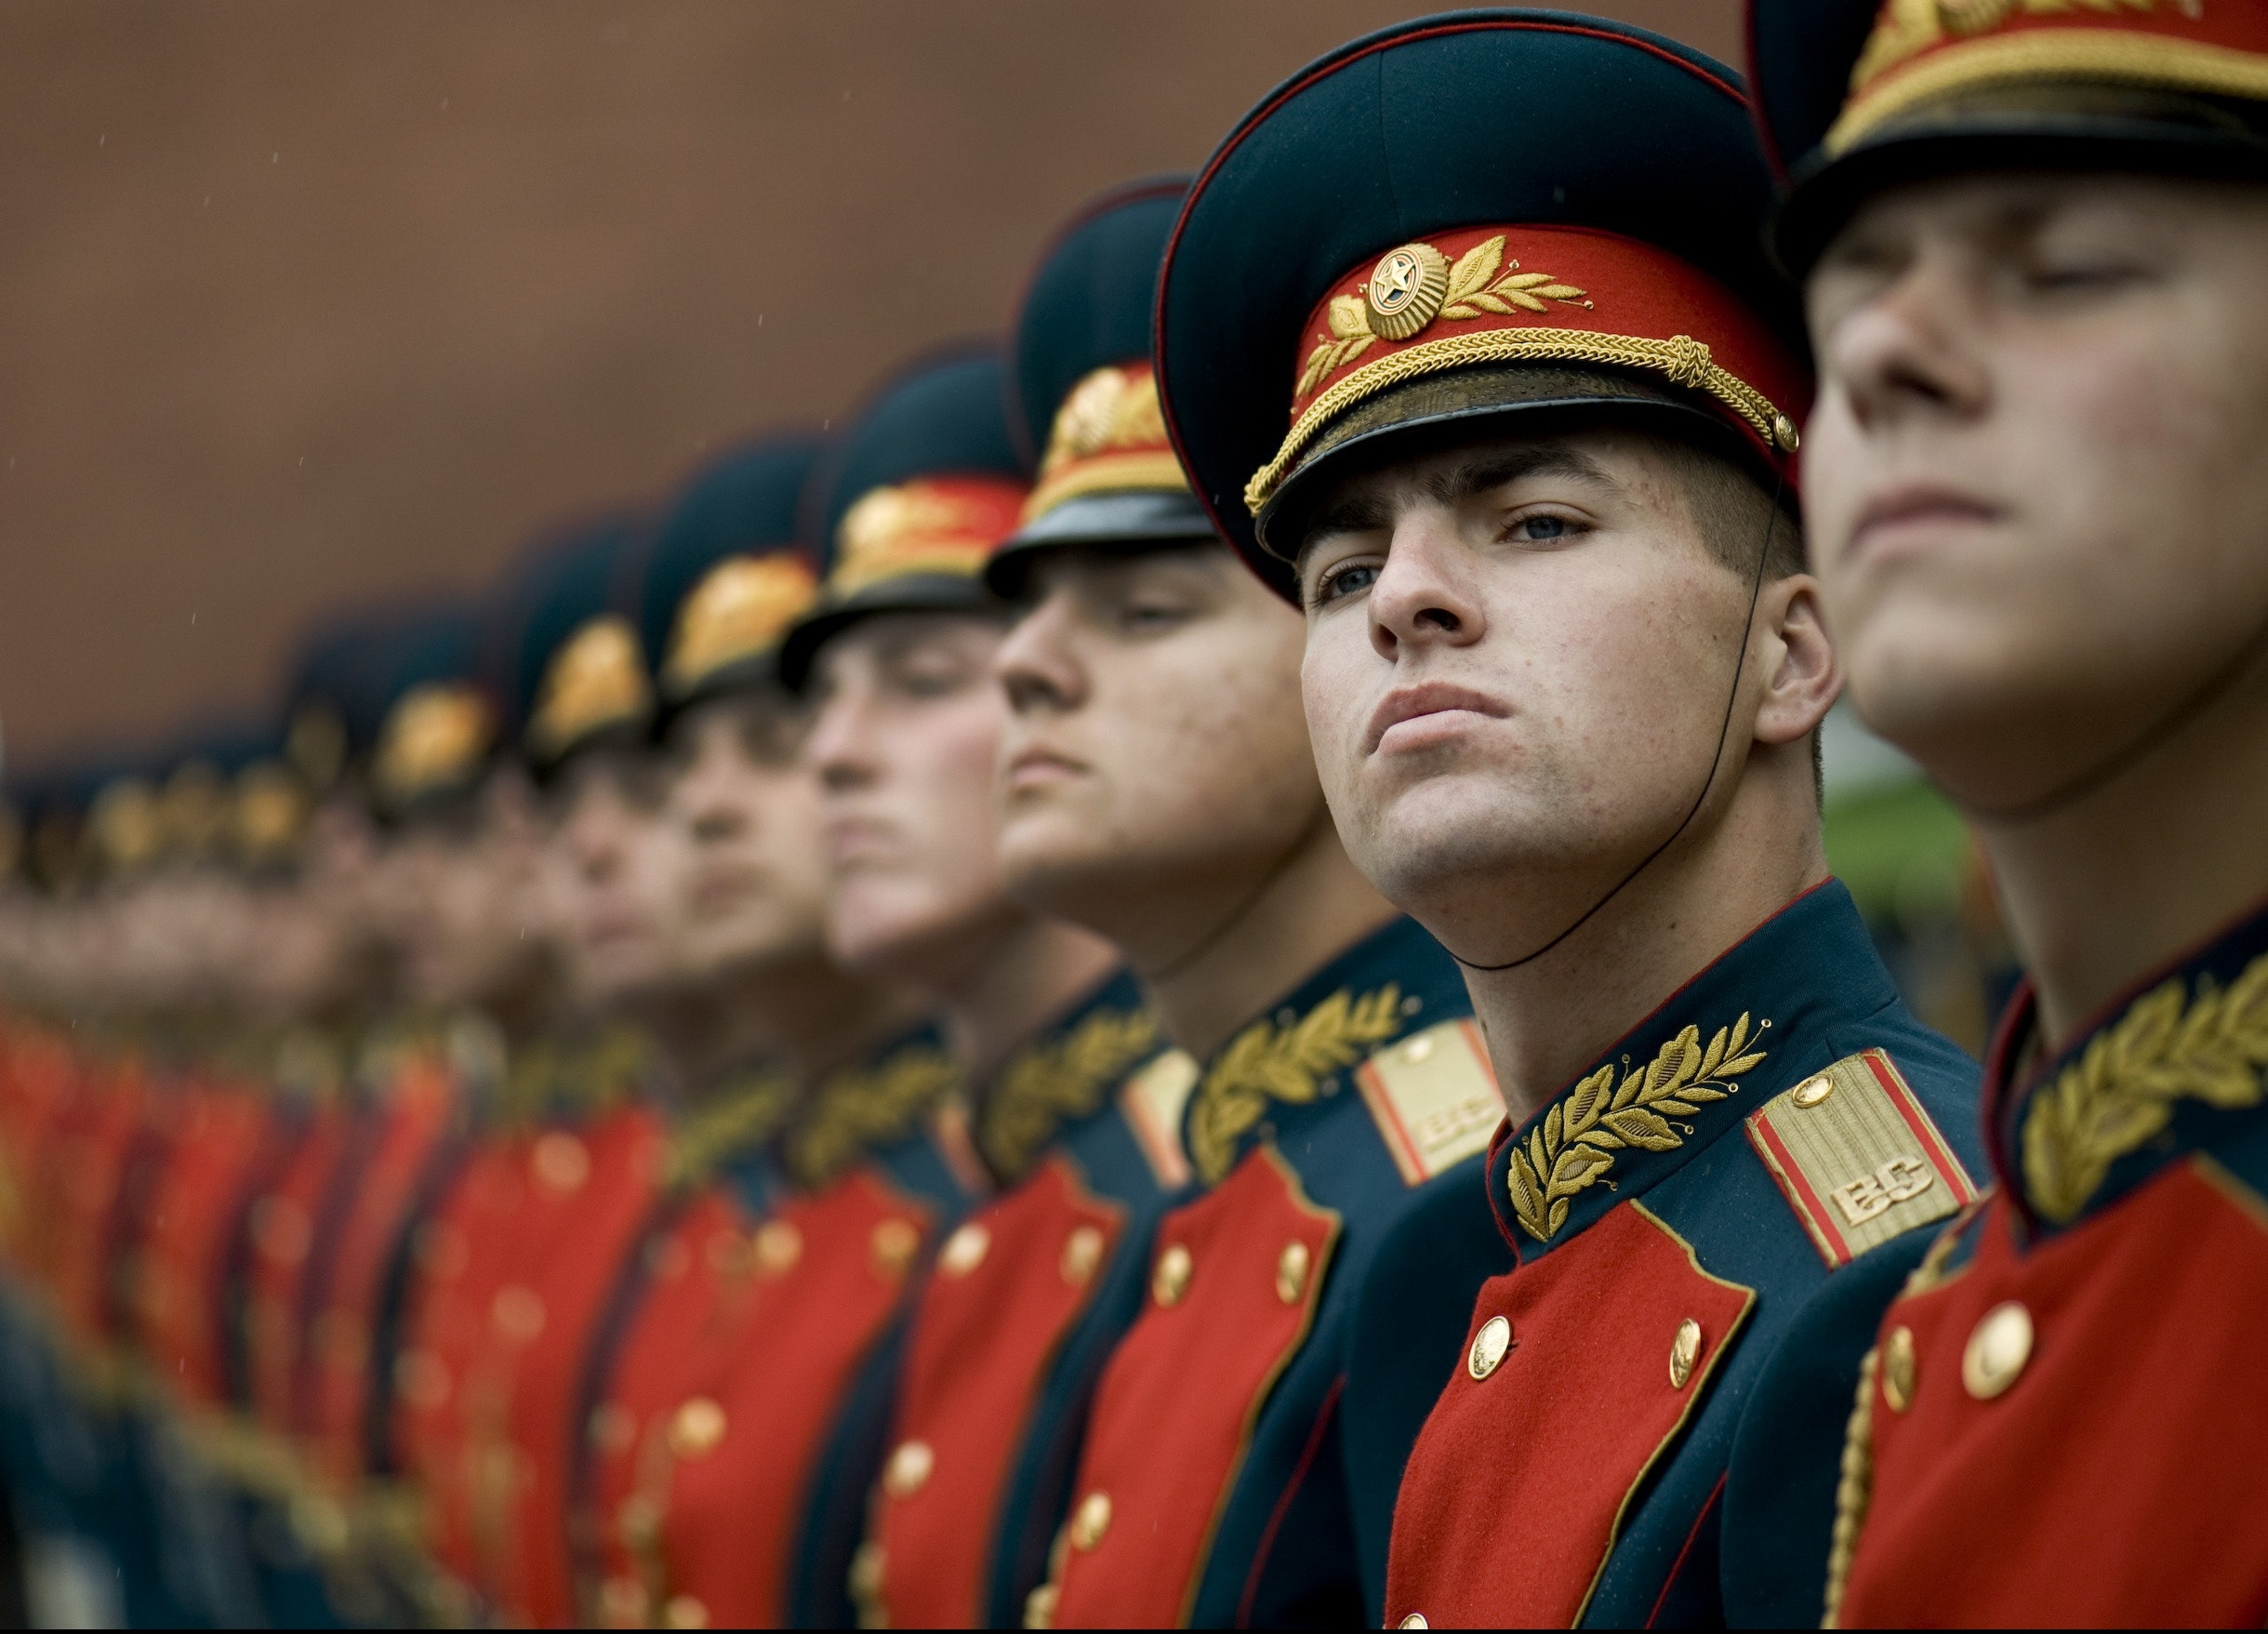 Men in black and red cade hats and military uniform photo